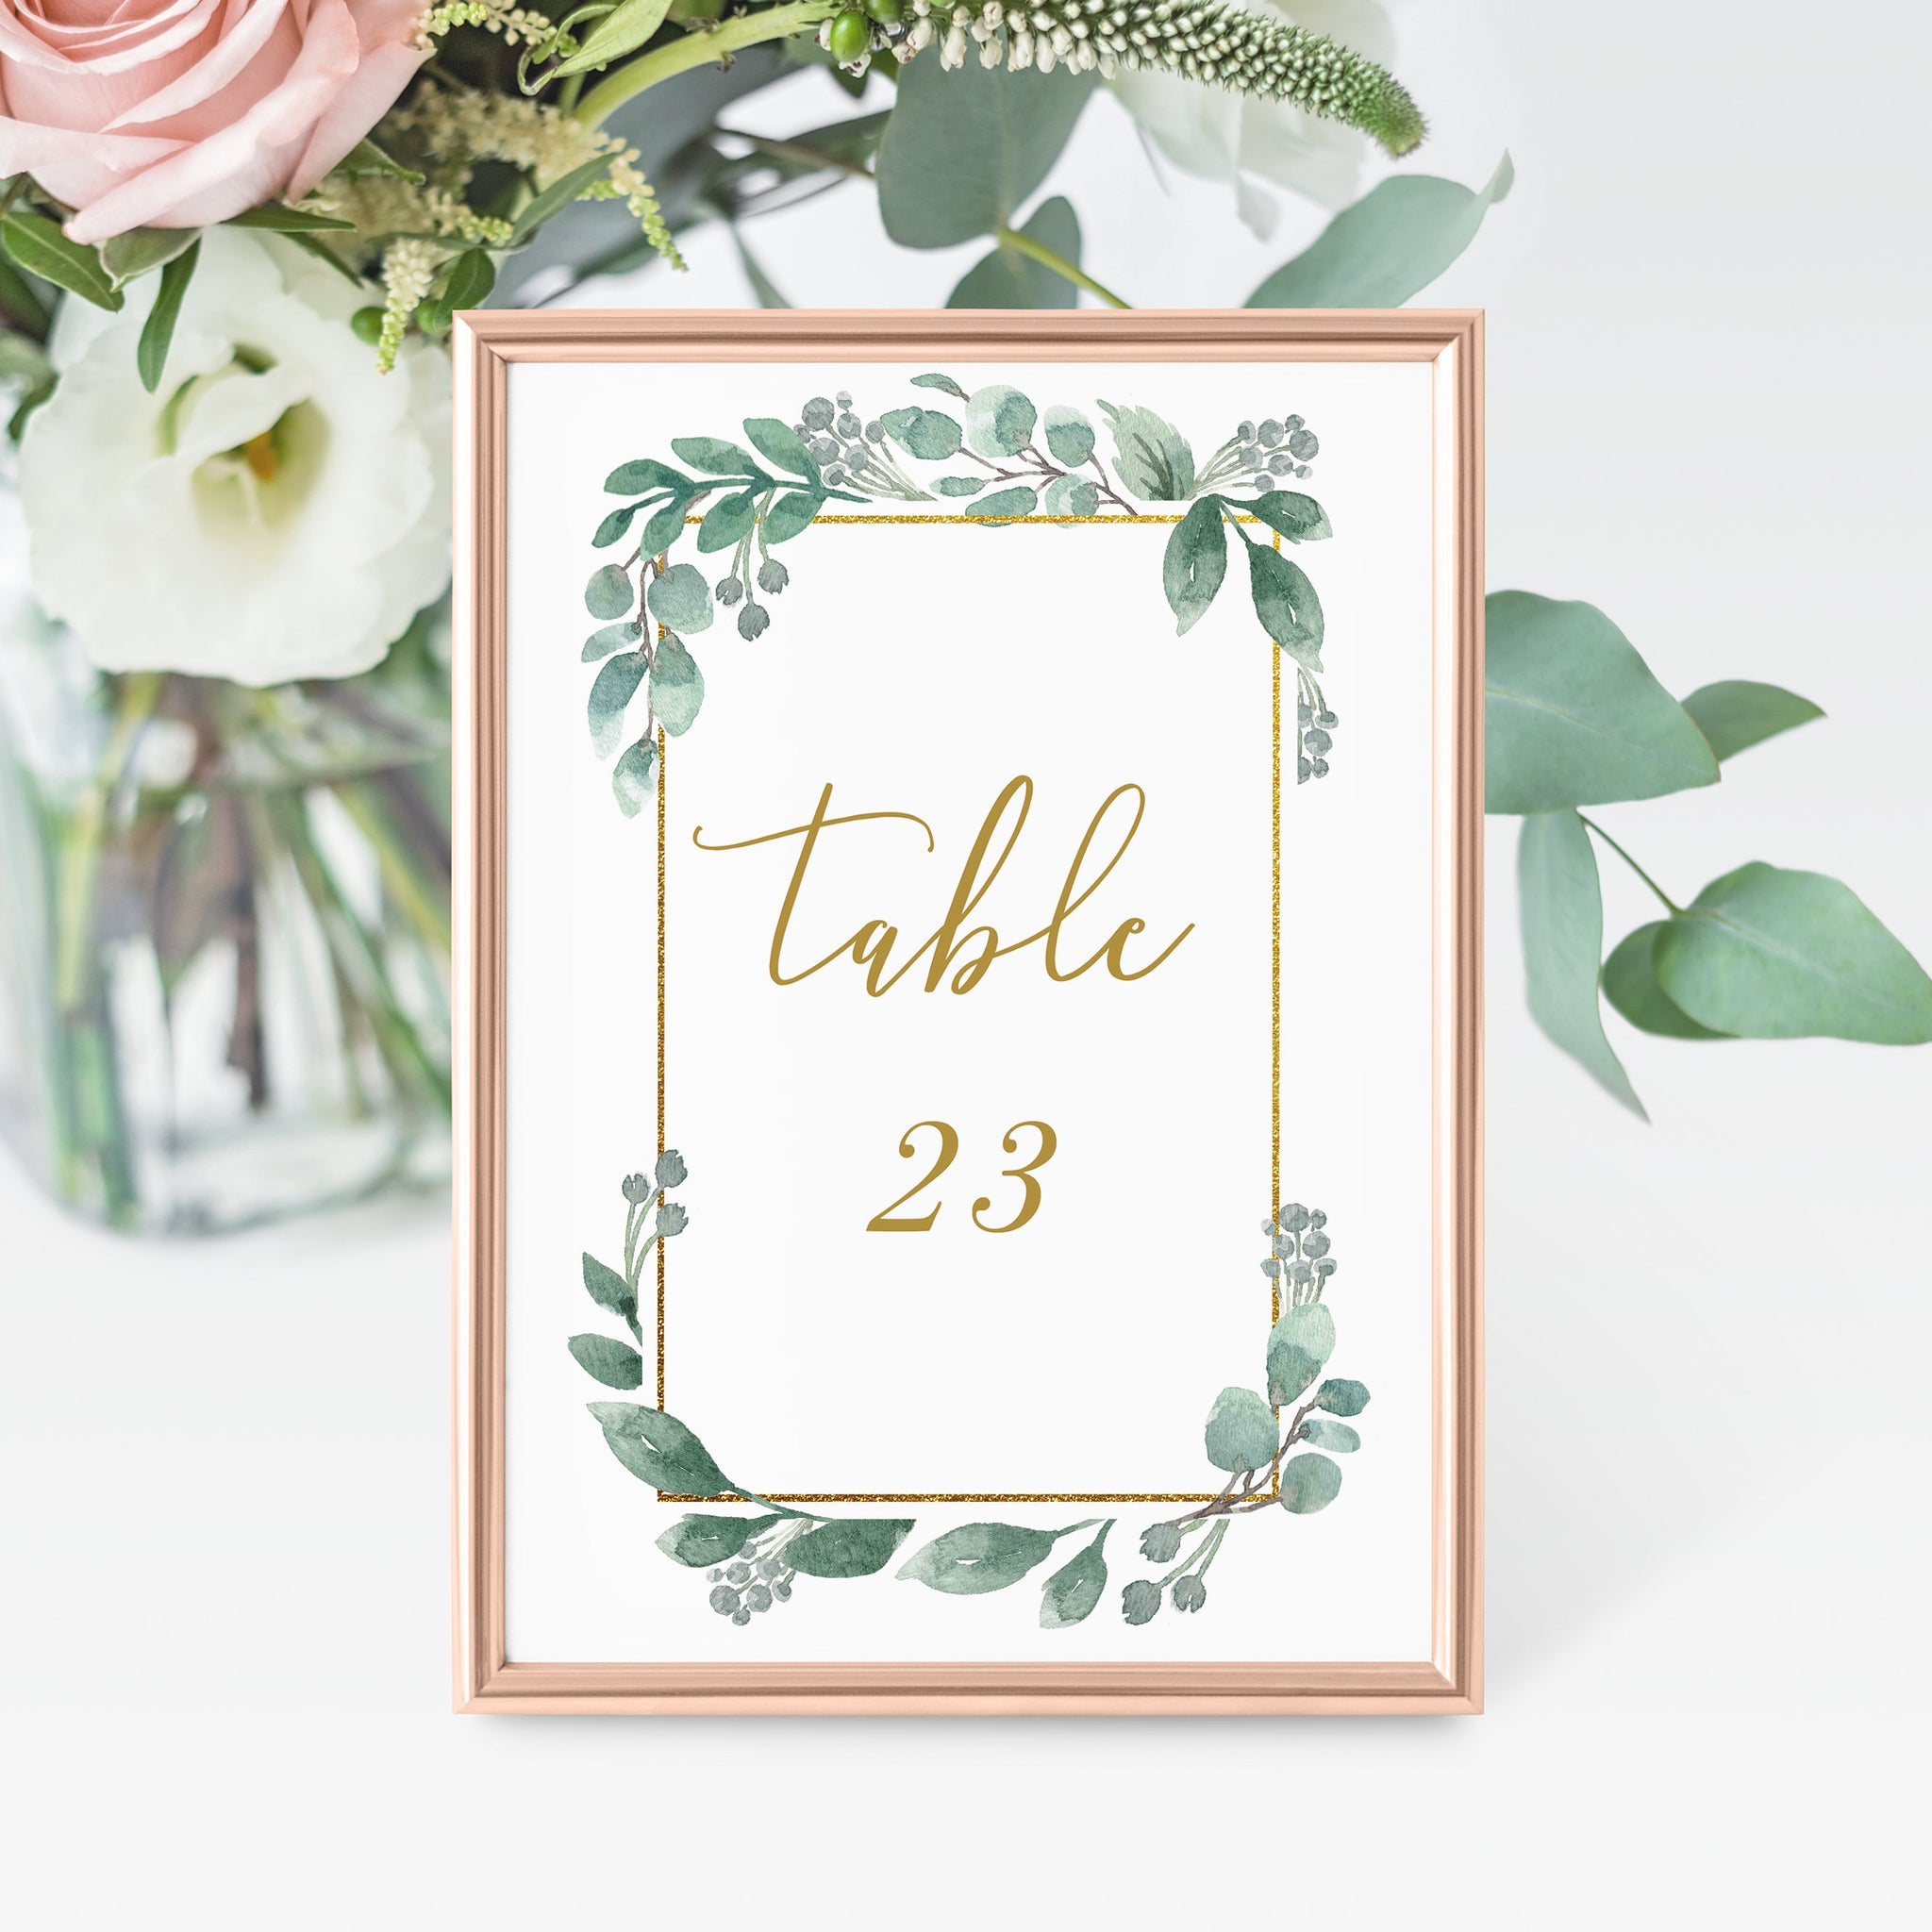 Greenery Wedding Table Numbers 1-50, Table Number Cards Wedding, Table Numbers 4x6 and 5x7, Printable INSTANT DOWNLOAD - GFG100